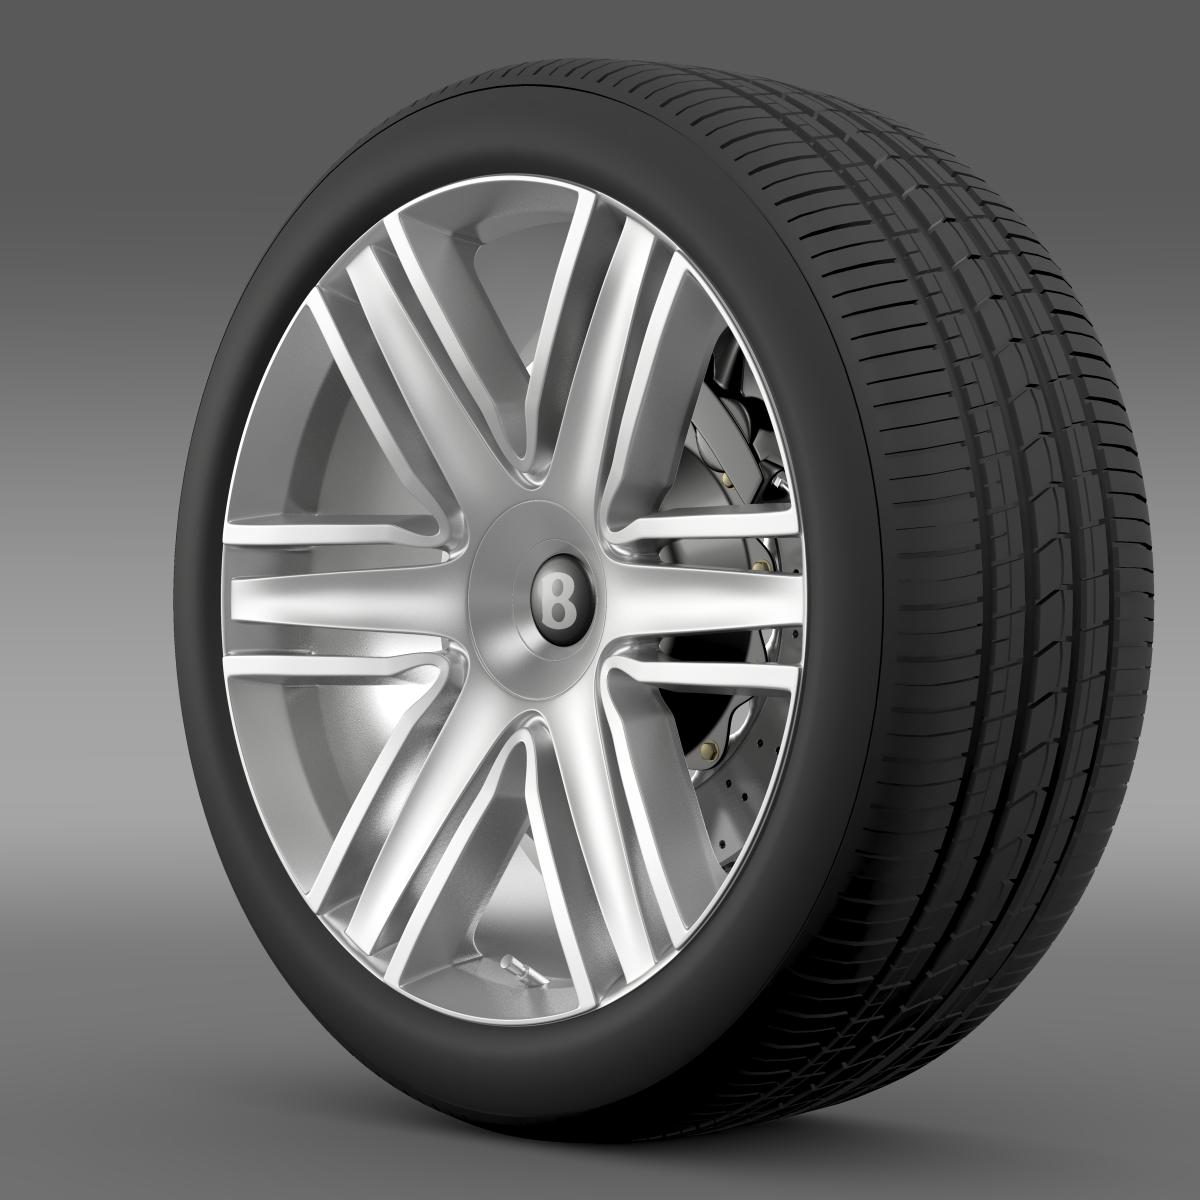 bentley continental gtc 2015 wheel 3d model 3ds max fbx c4d lwo ma mb hrc xsi obj 210611